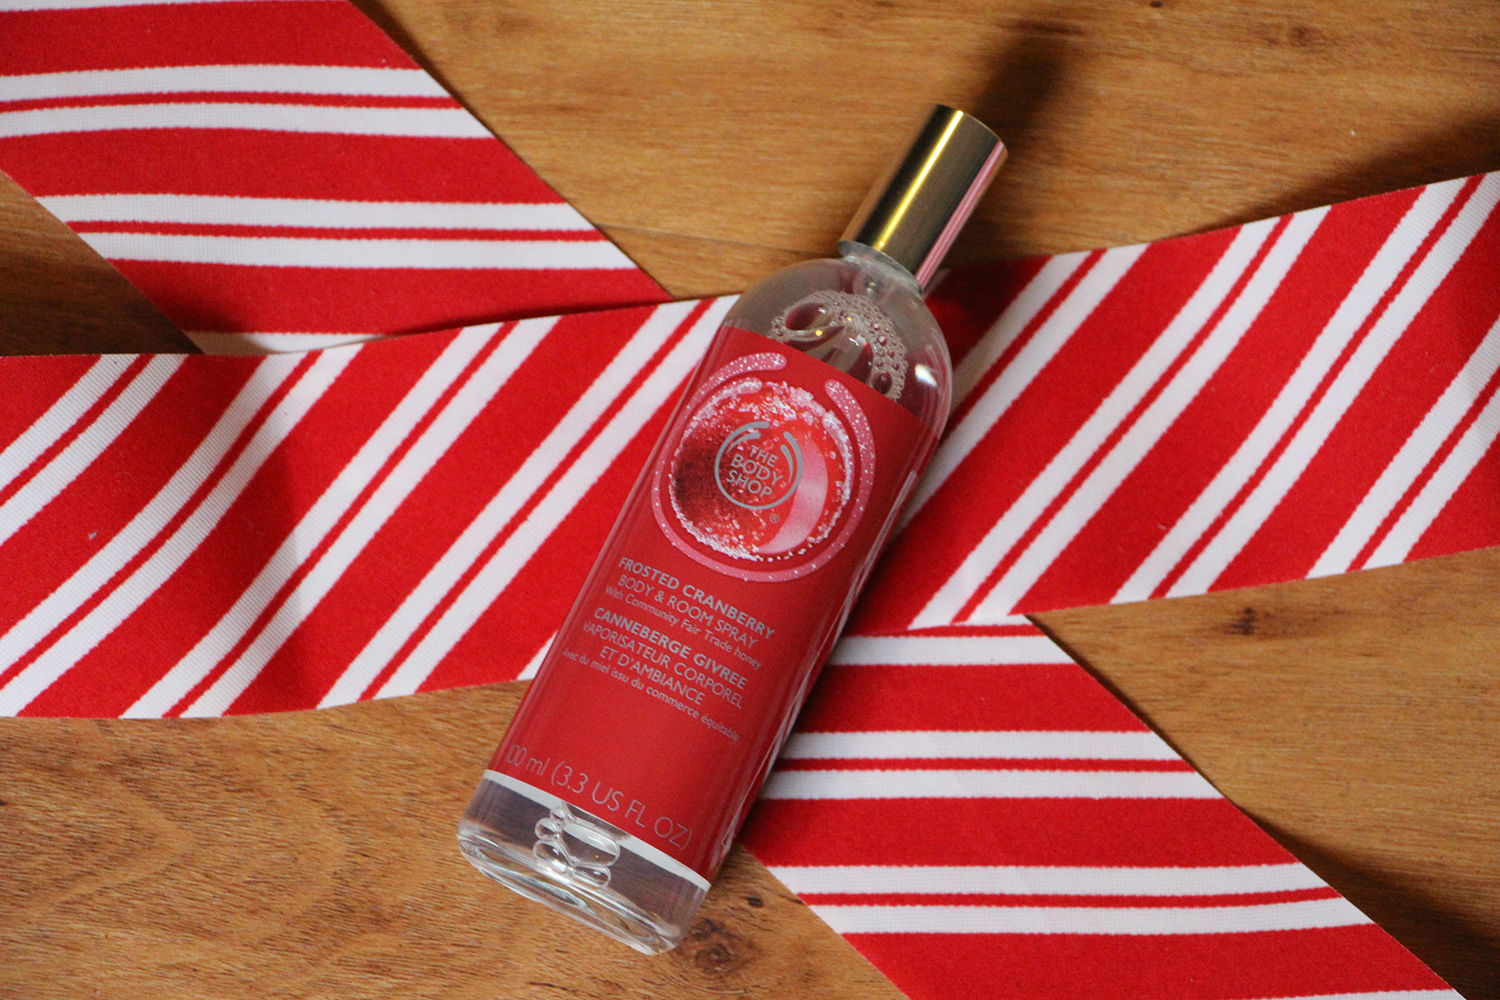 the body shop frosted cranberry room and body spray